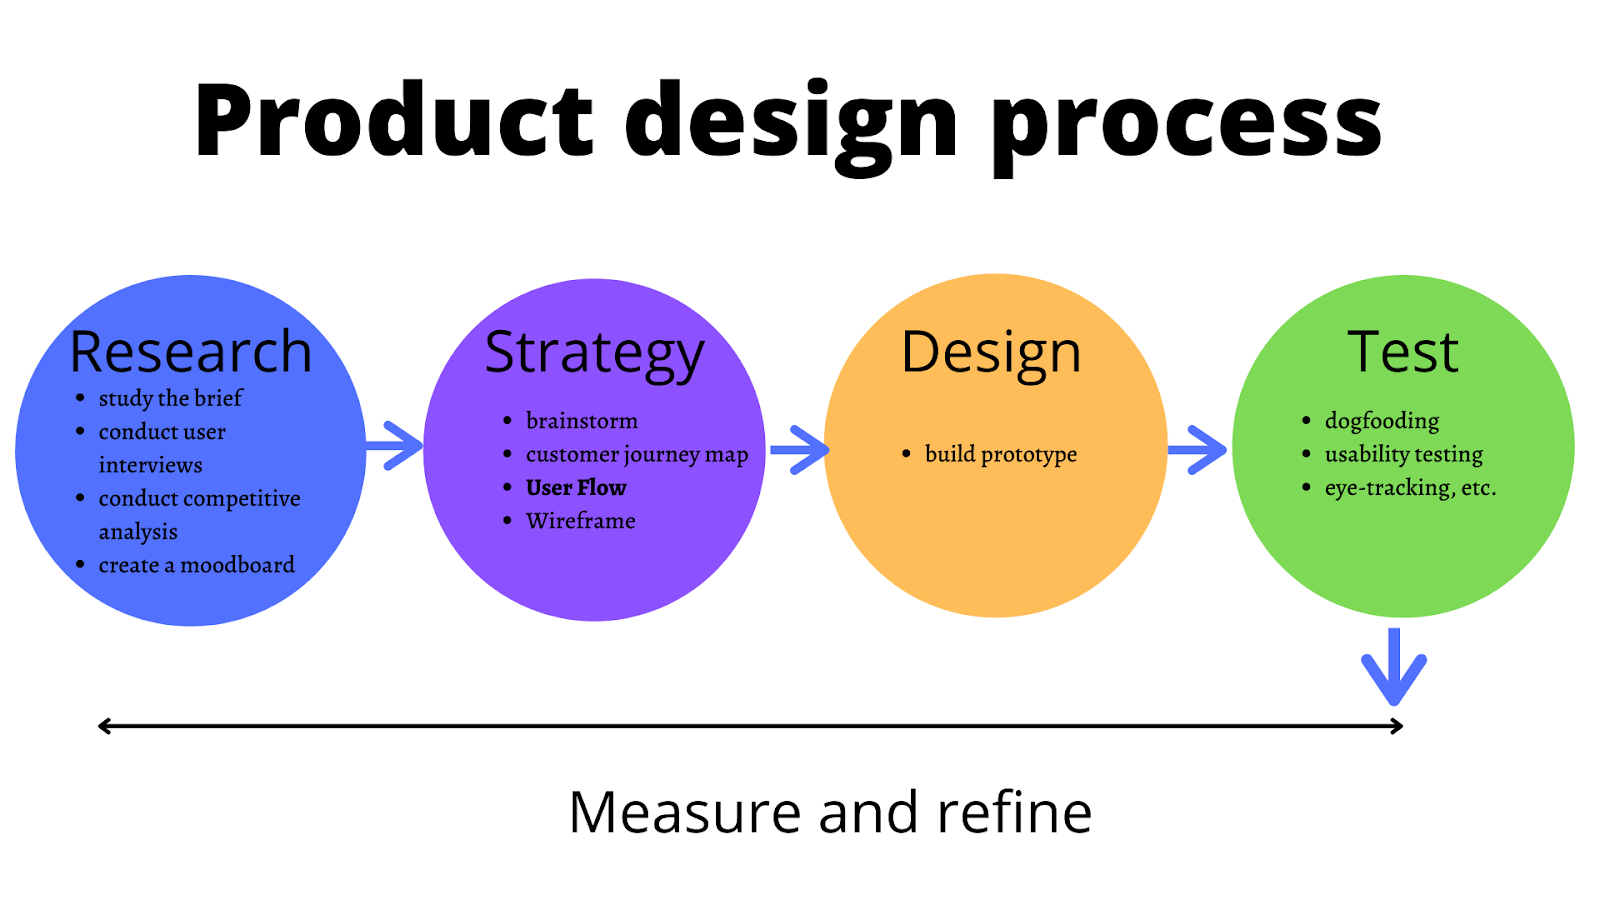 the place of user flow in the product design process